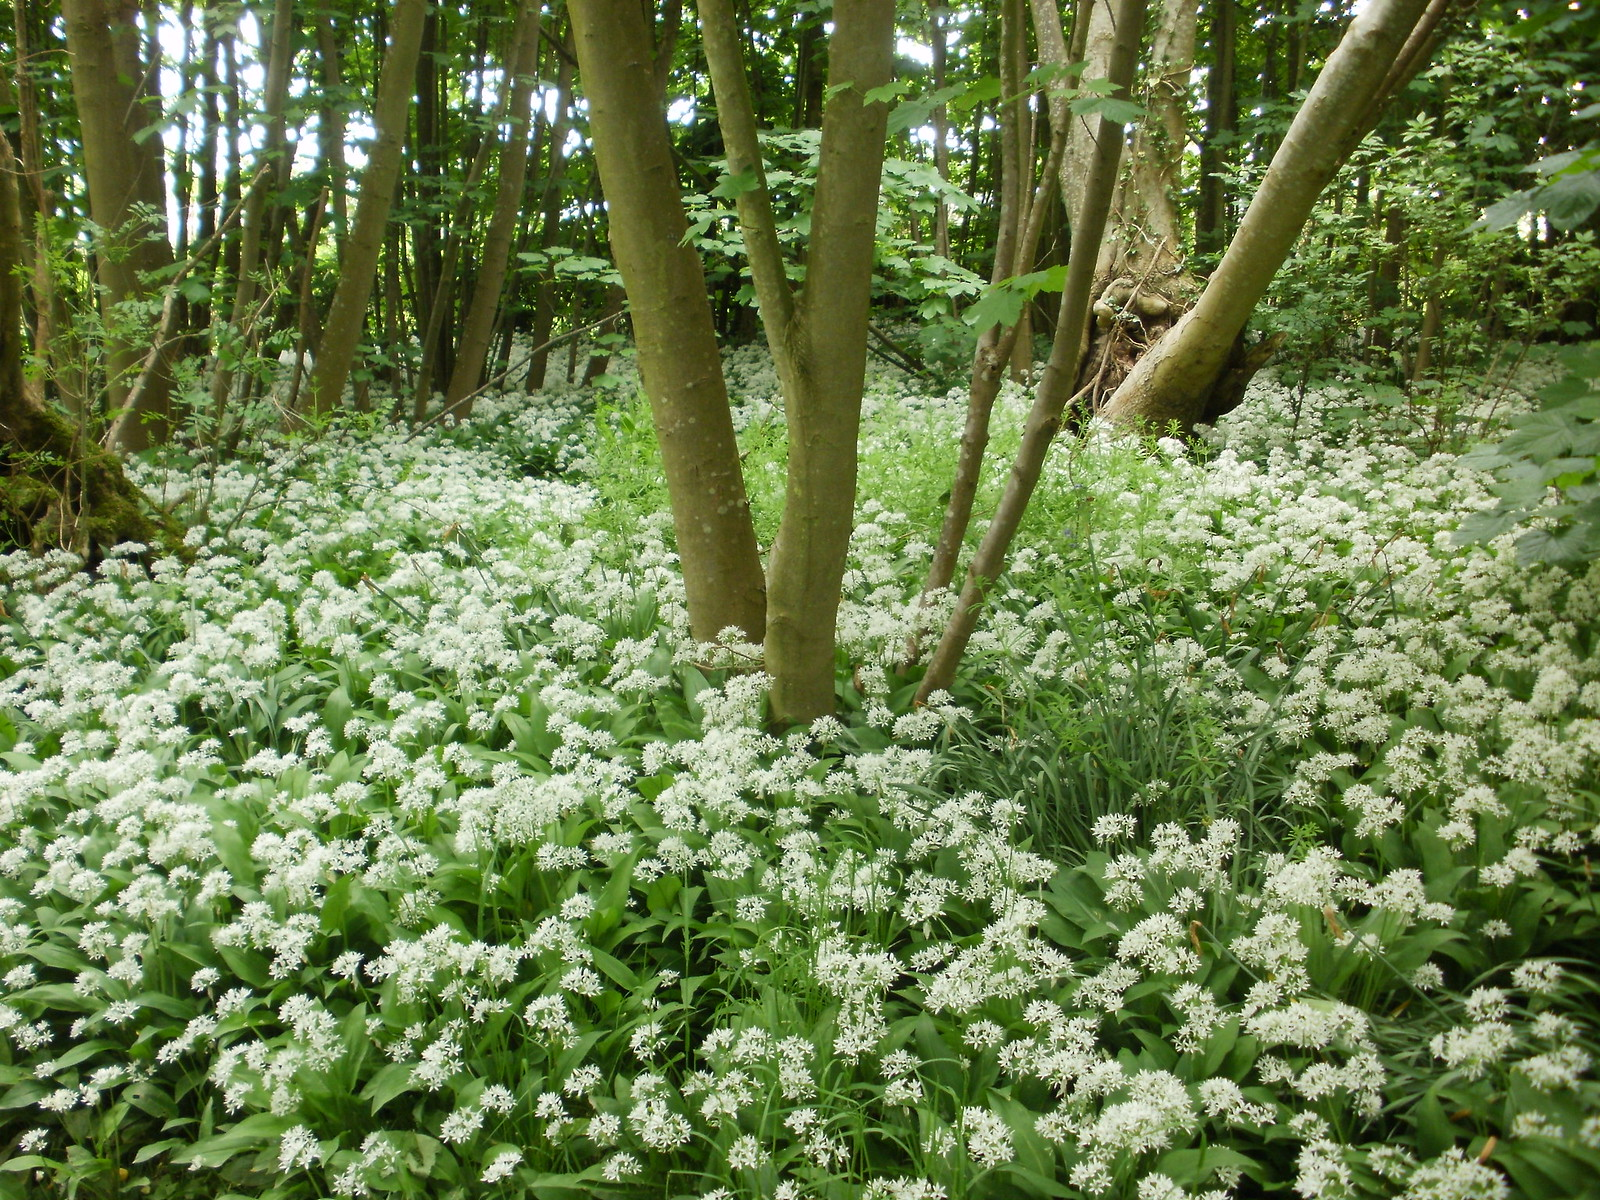 Wild garlic flowers Kent